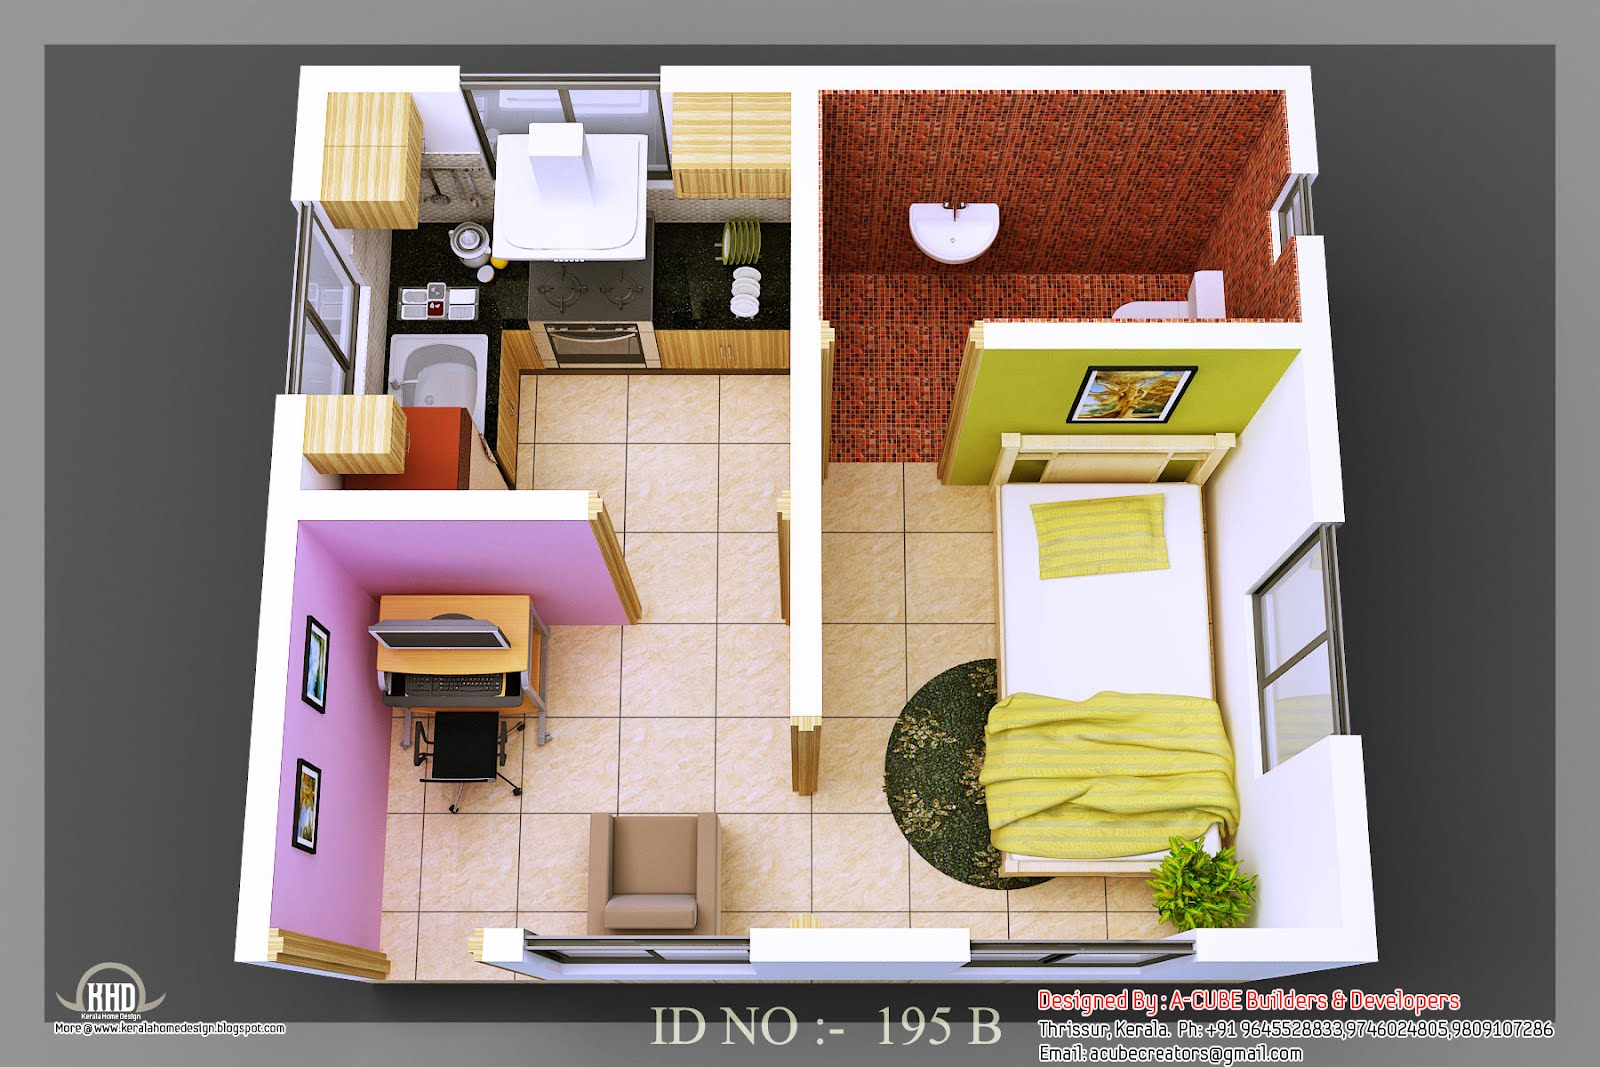 3d isometric views of small house plans a taste in heaven Latest 3d home design